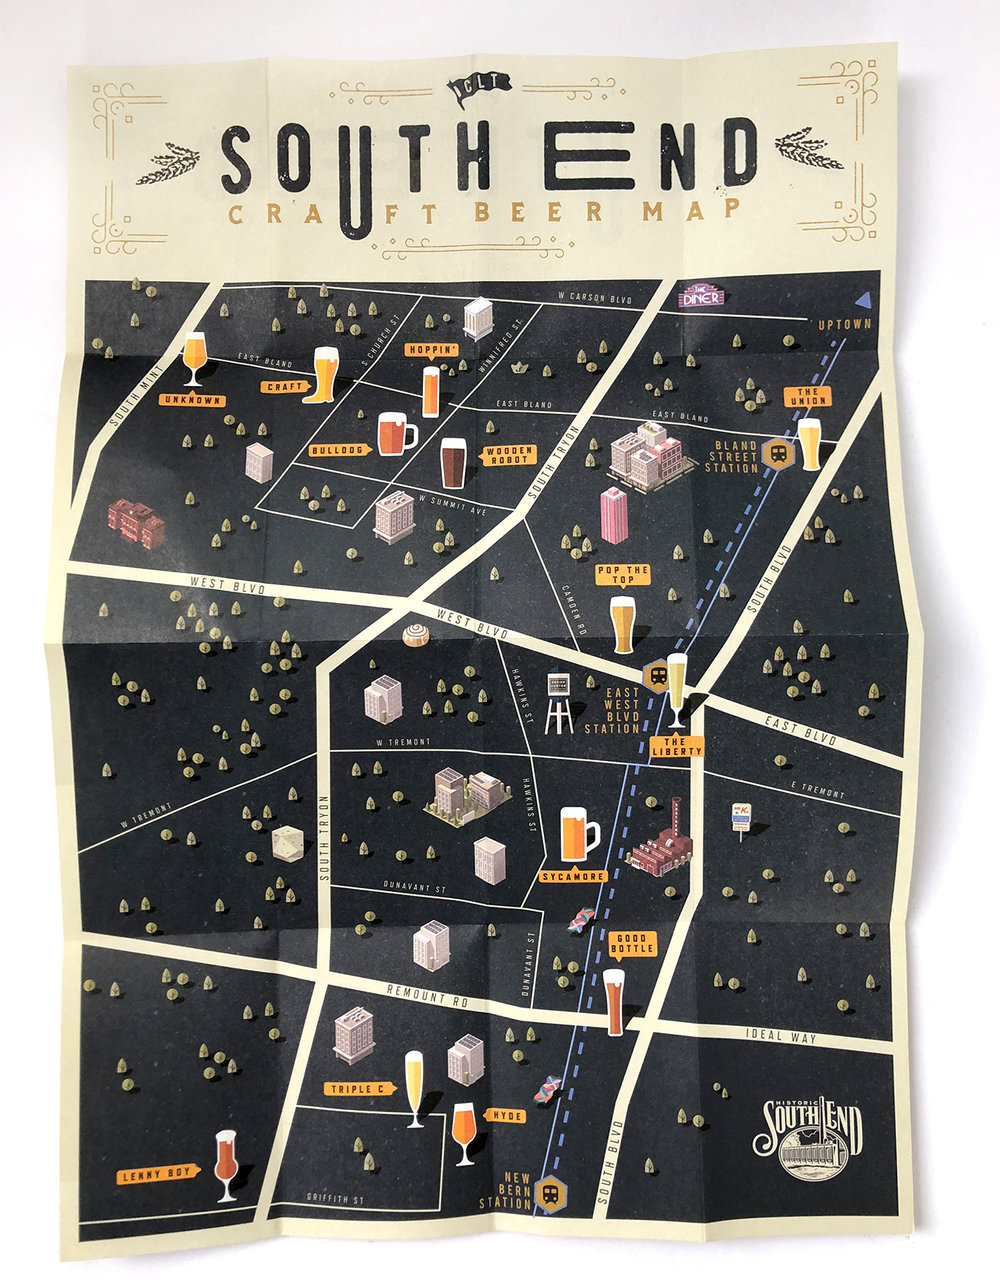 SOUTH END CRAFT BEER MAP    BRANDING